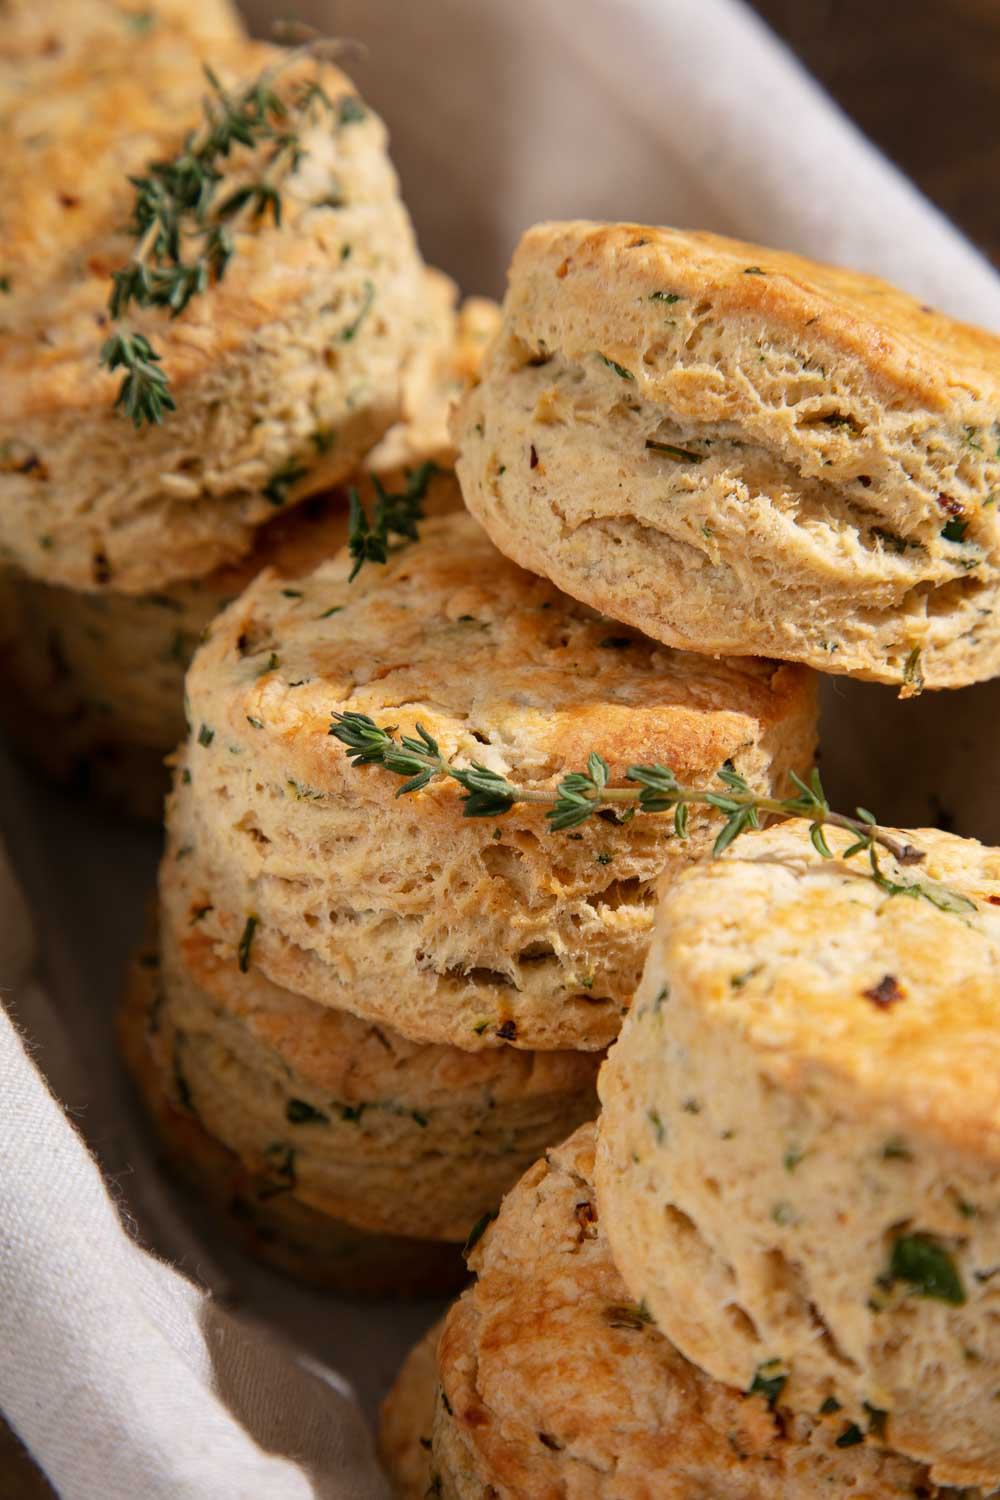 Vegan savoury scones with fresh thyme sprigs in a lined basket.